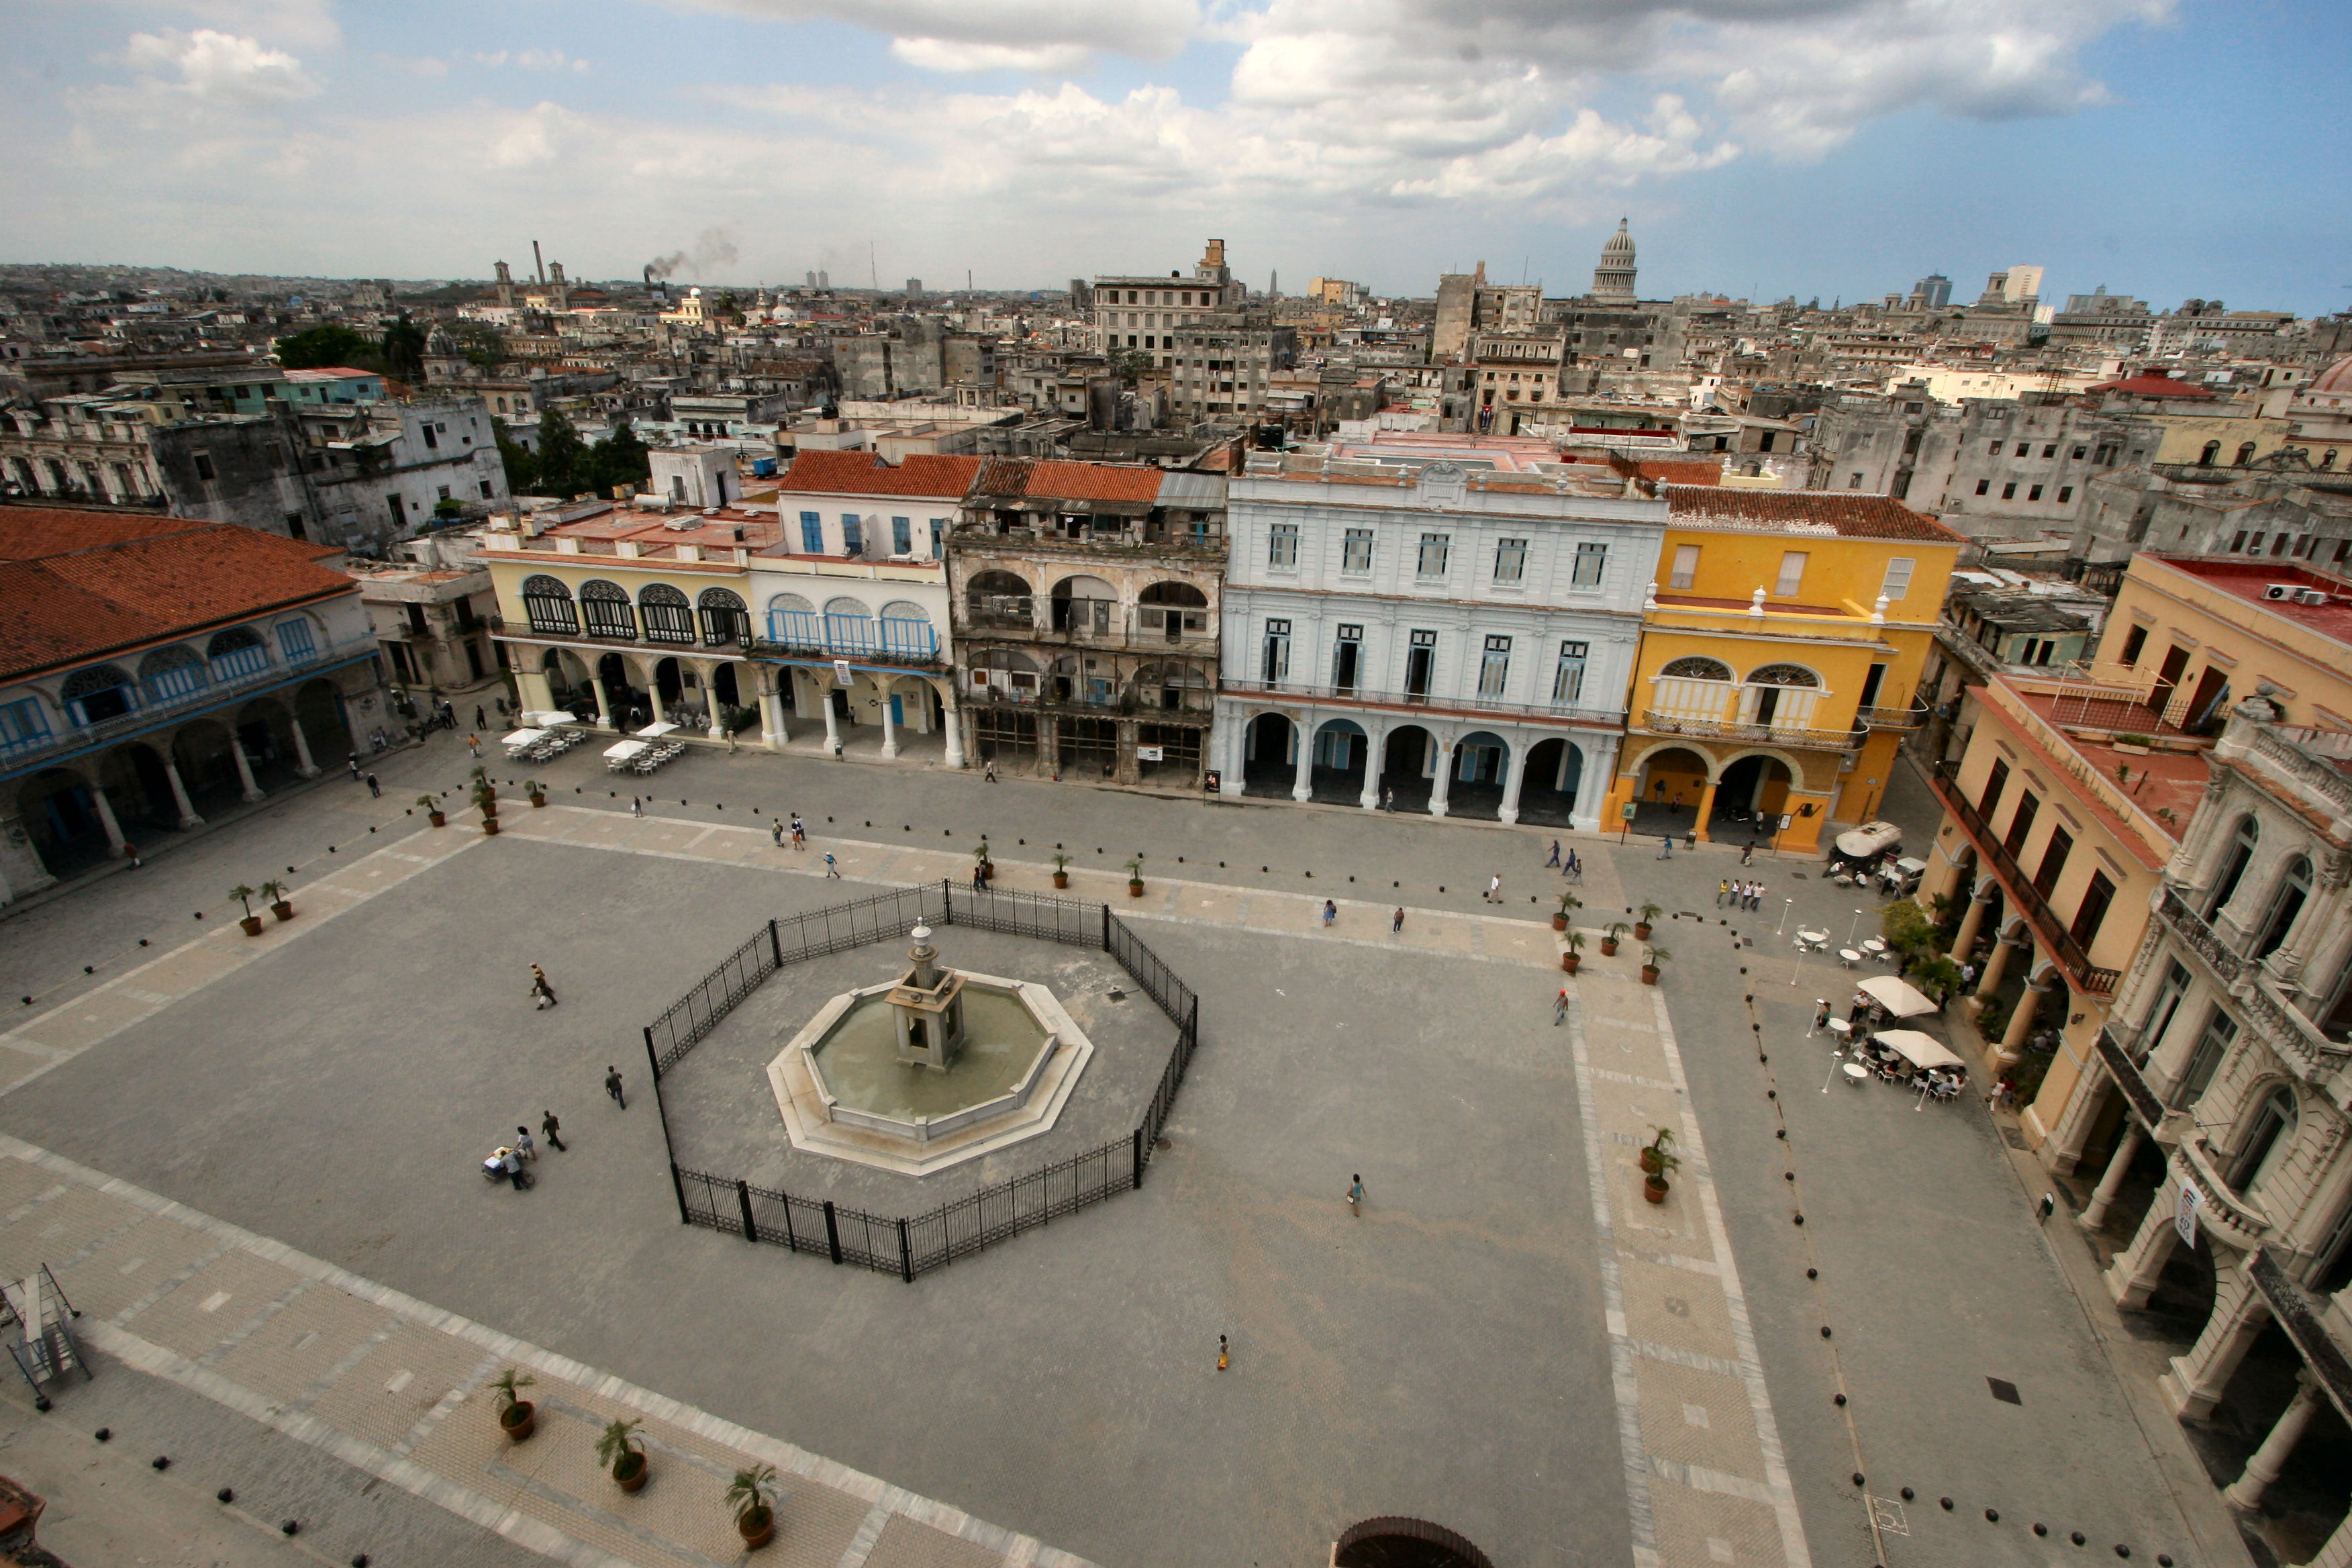 File:Old Square, Havana.jpg - Wikimedia Commons